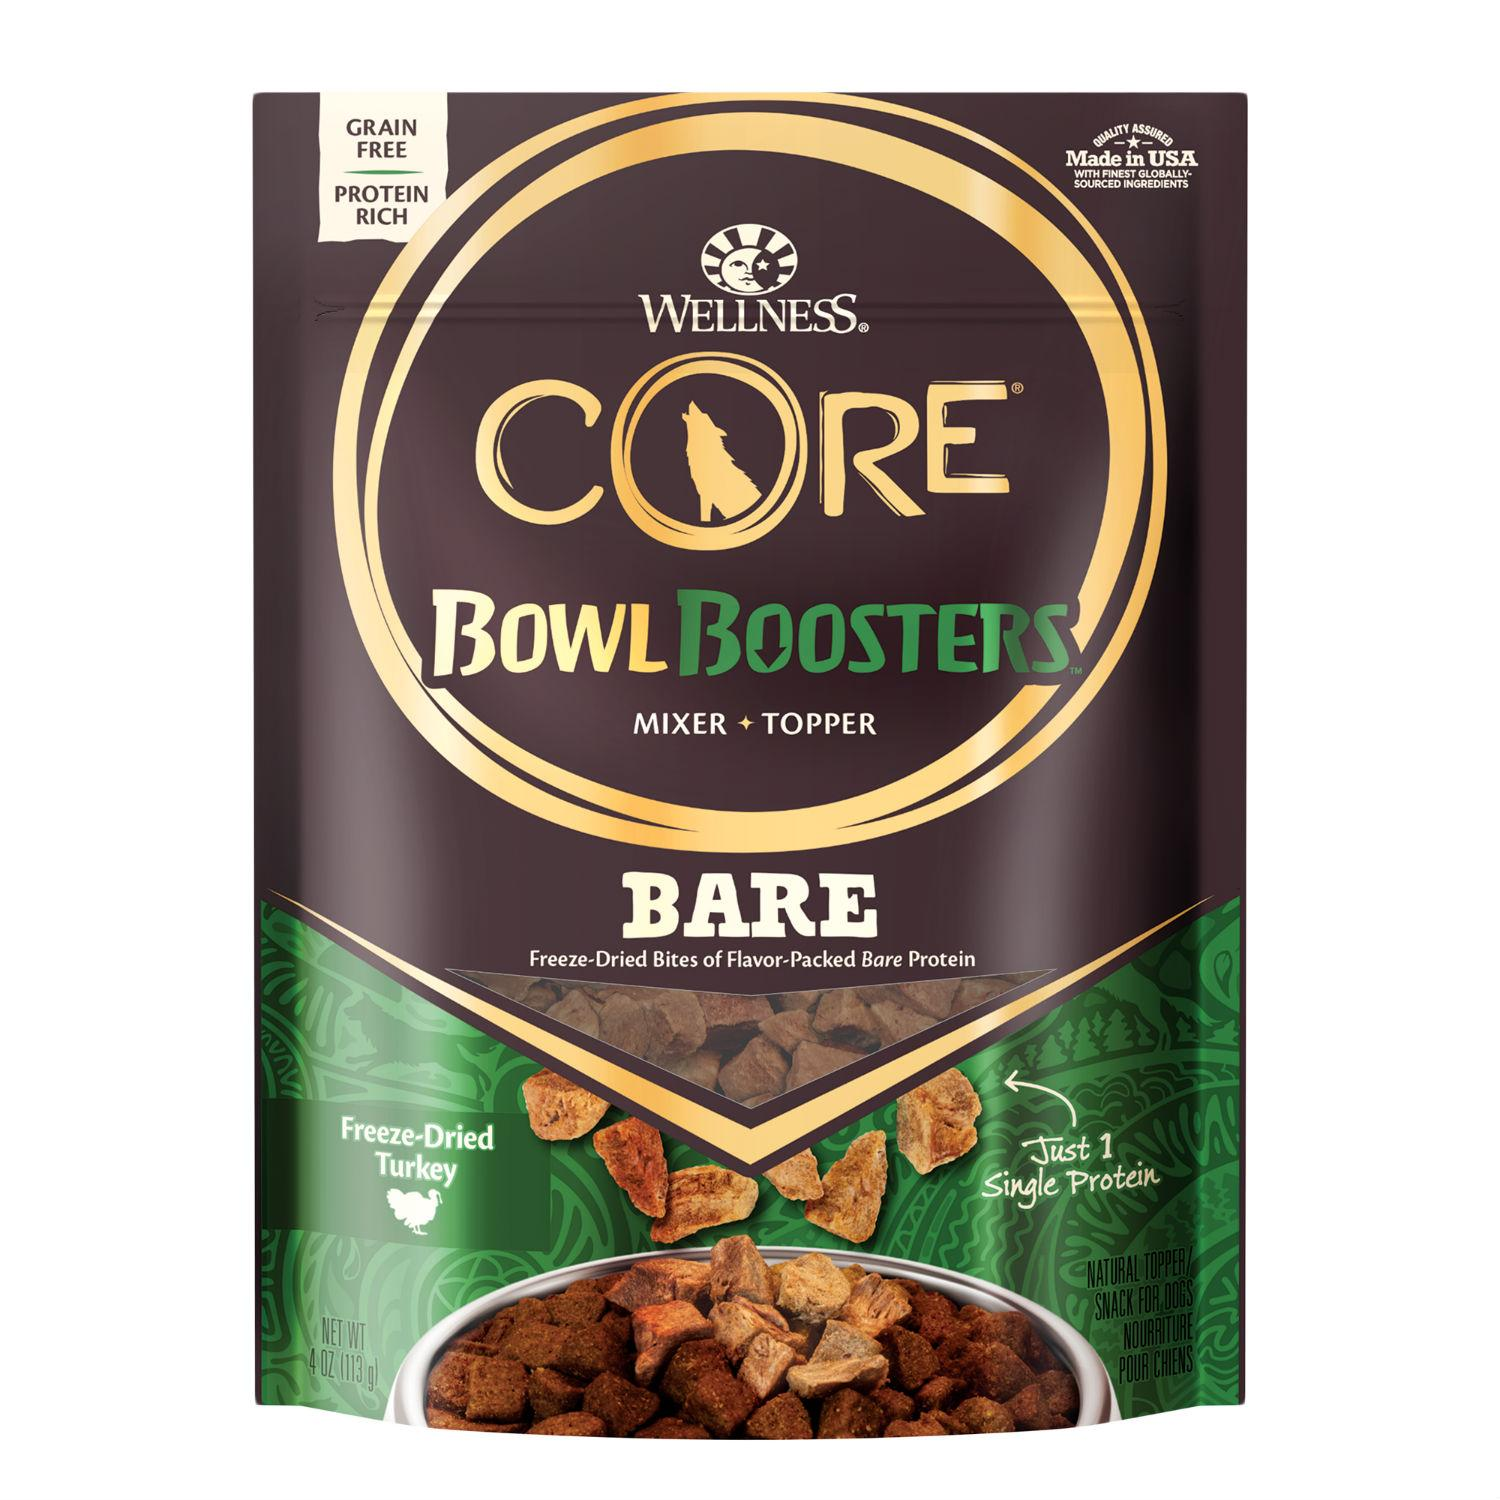 Wellness CORE Bowl Booster Dog Food Topper - BARE 100% Turkey